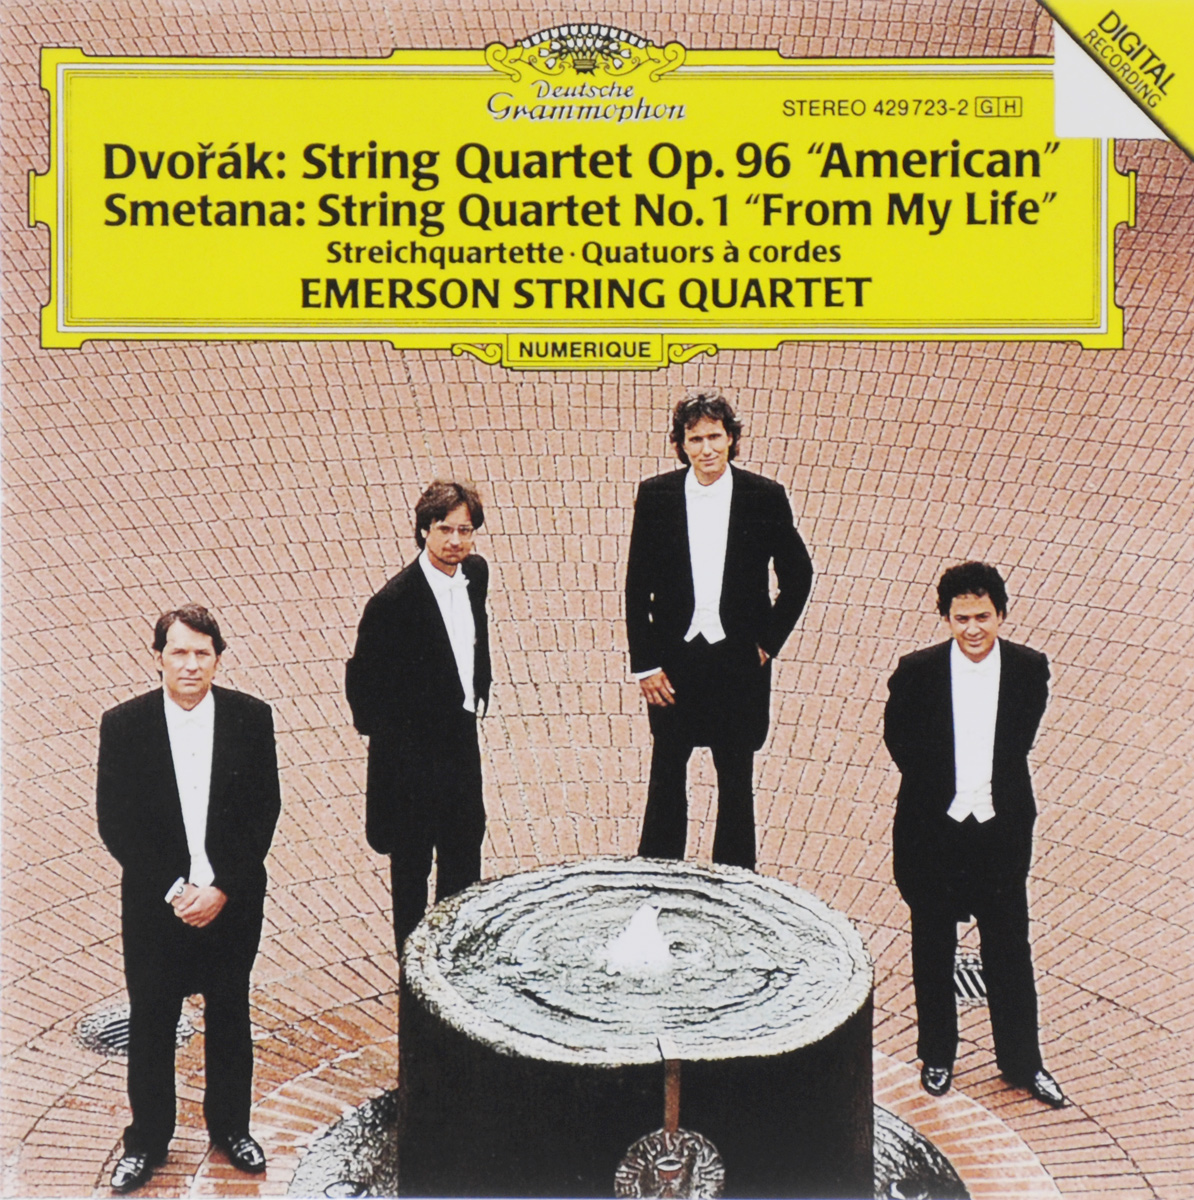 Emerson String Quartet Emerson String Quartet. String Quartet Op. 96 American / String Quartet No. 1 From My Life лопатка с прорезями gipfel orbit 6583